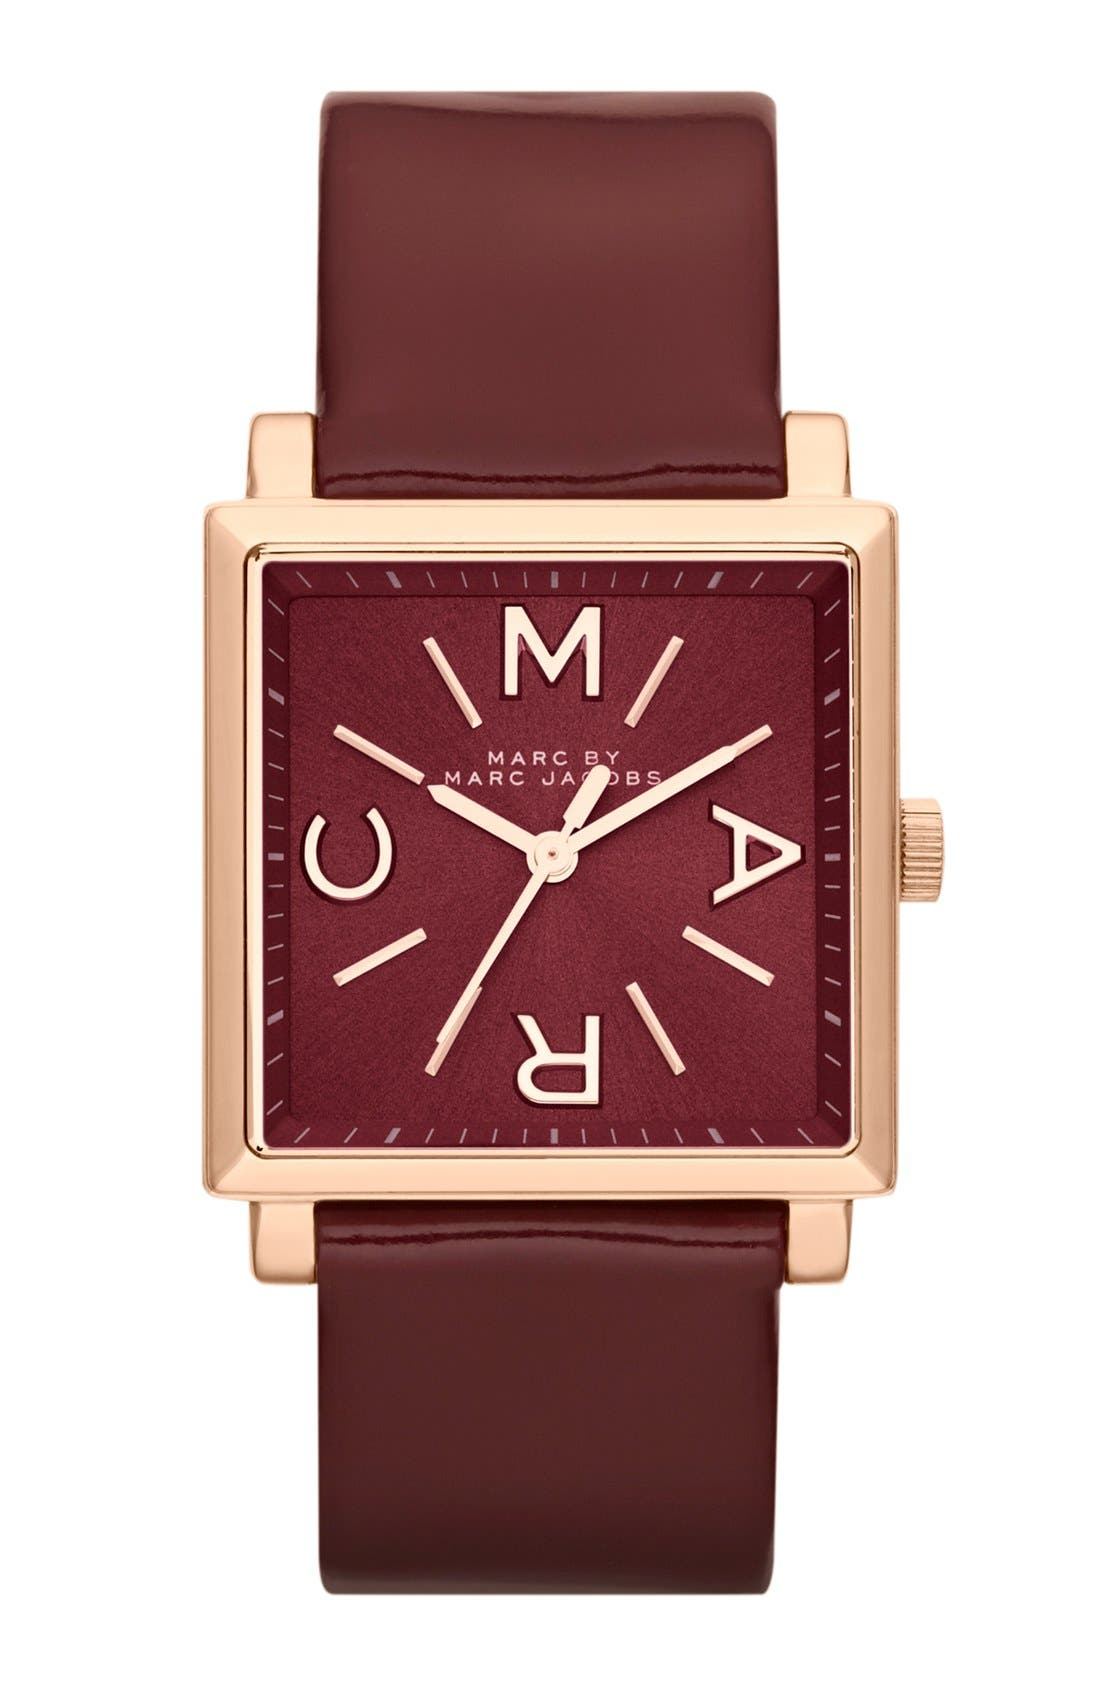 Main Image - MARC BY MARC JACOBS 'Truman' Square Leather Strap Watch, 30mm